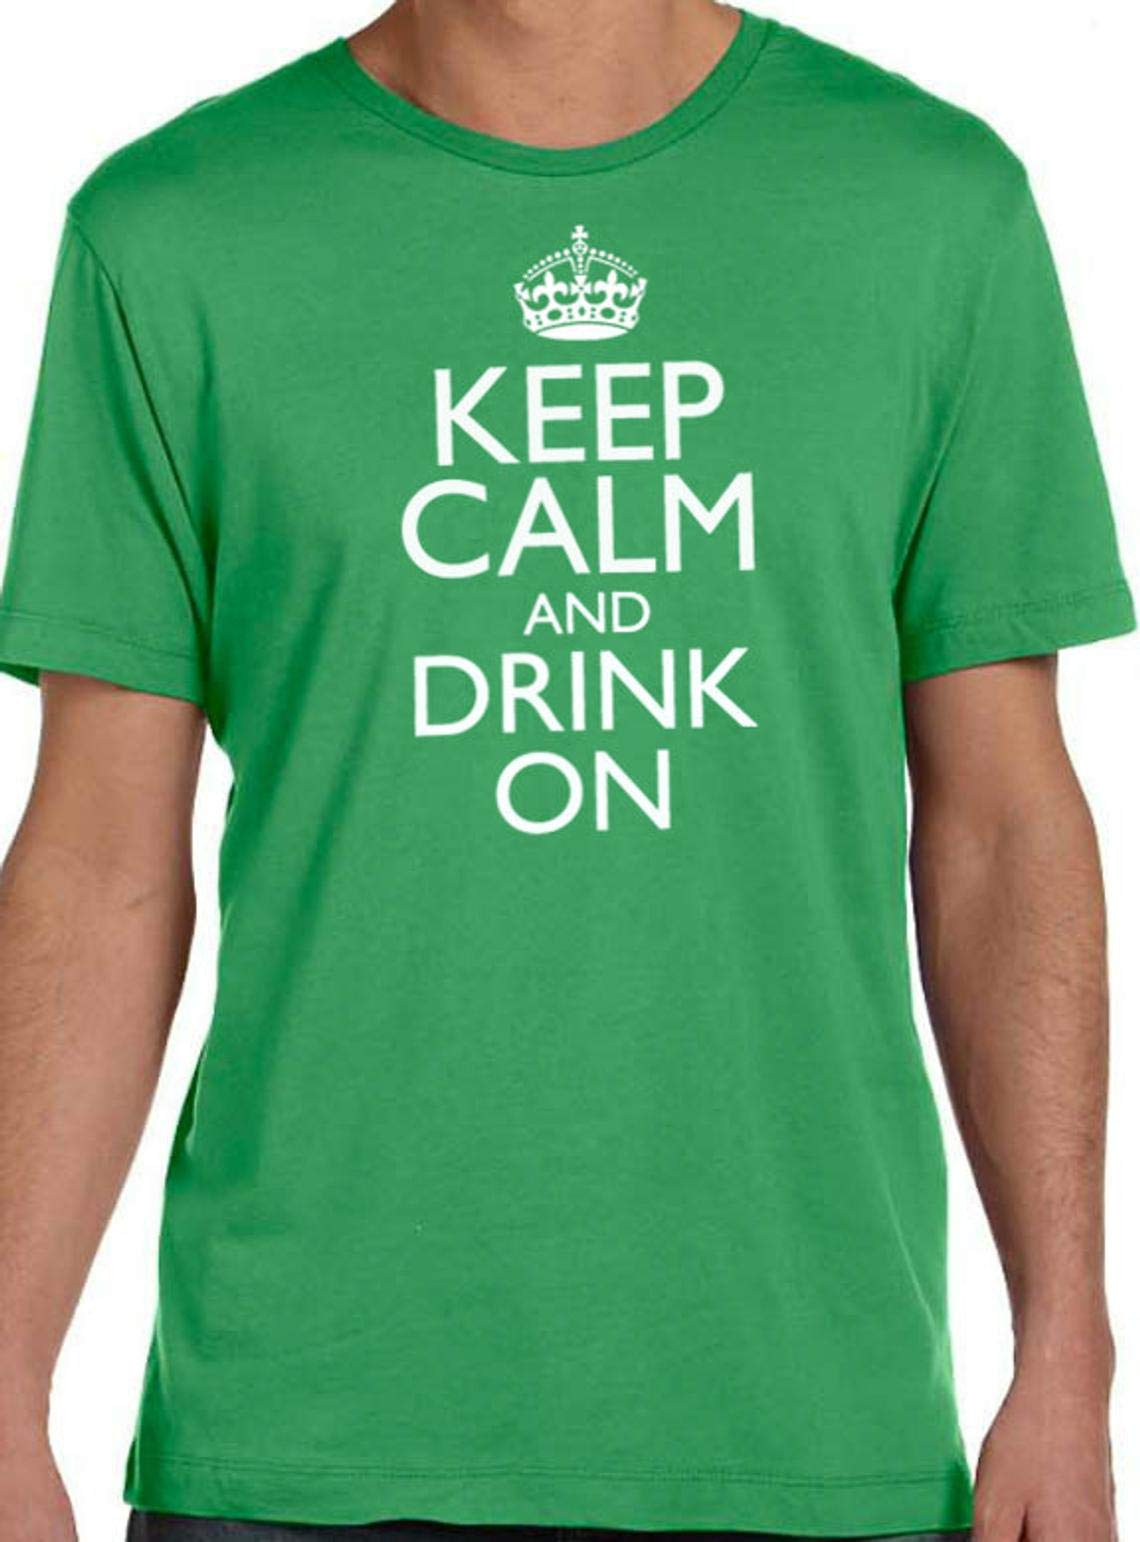 Ebollo S Keep Calm And Drink On Husband Gift St Patricks Day Party T Shirt Irish Gift 7113